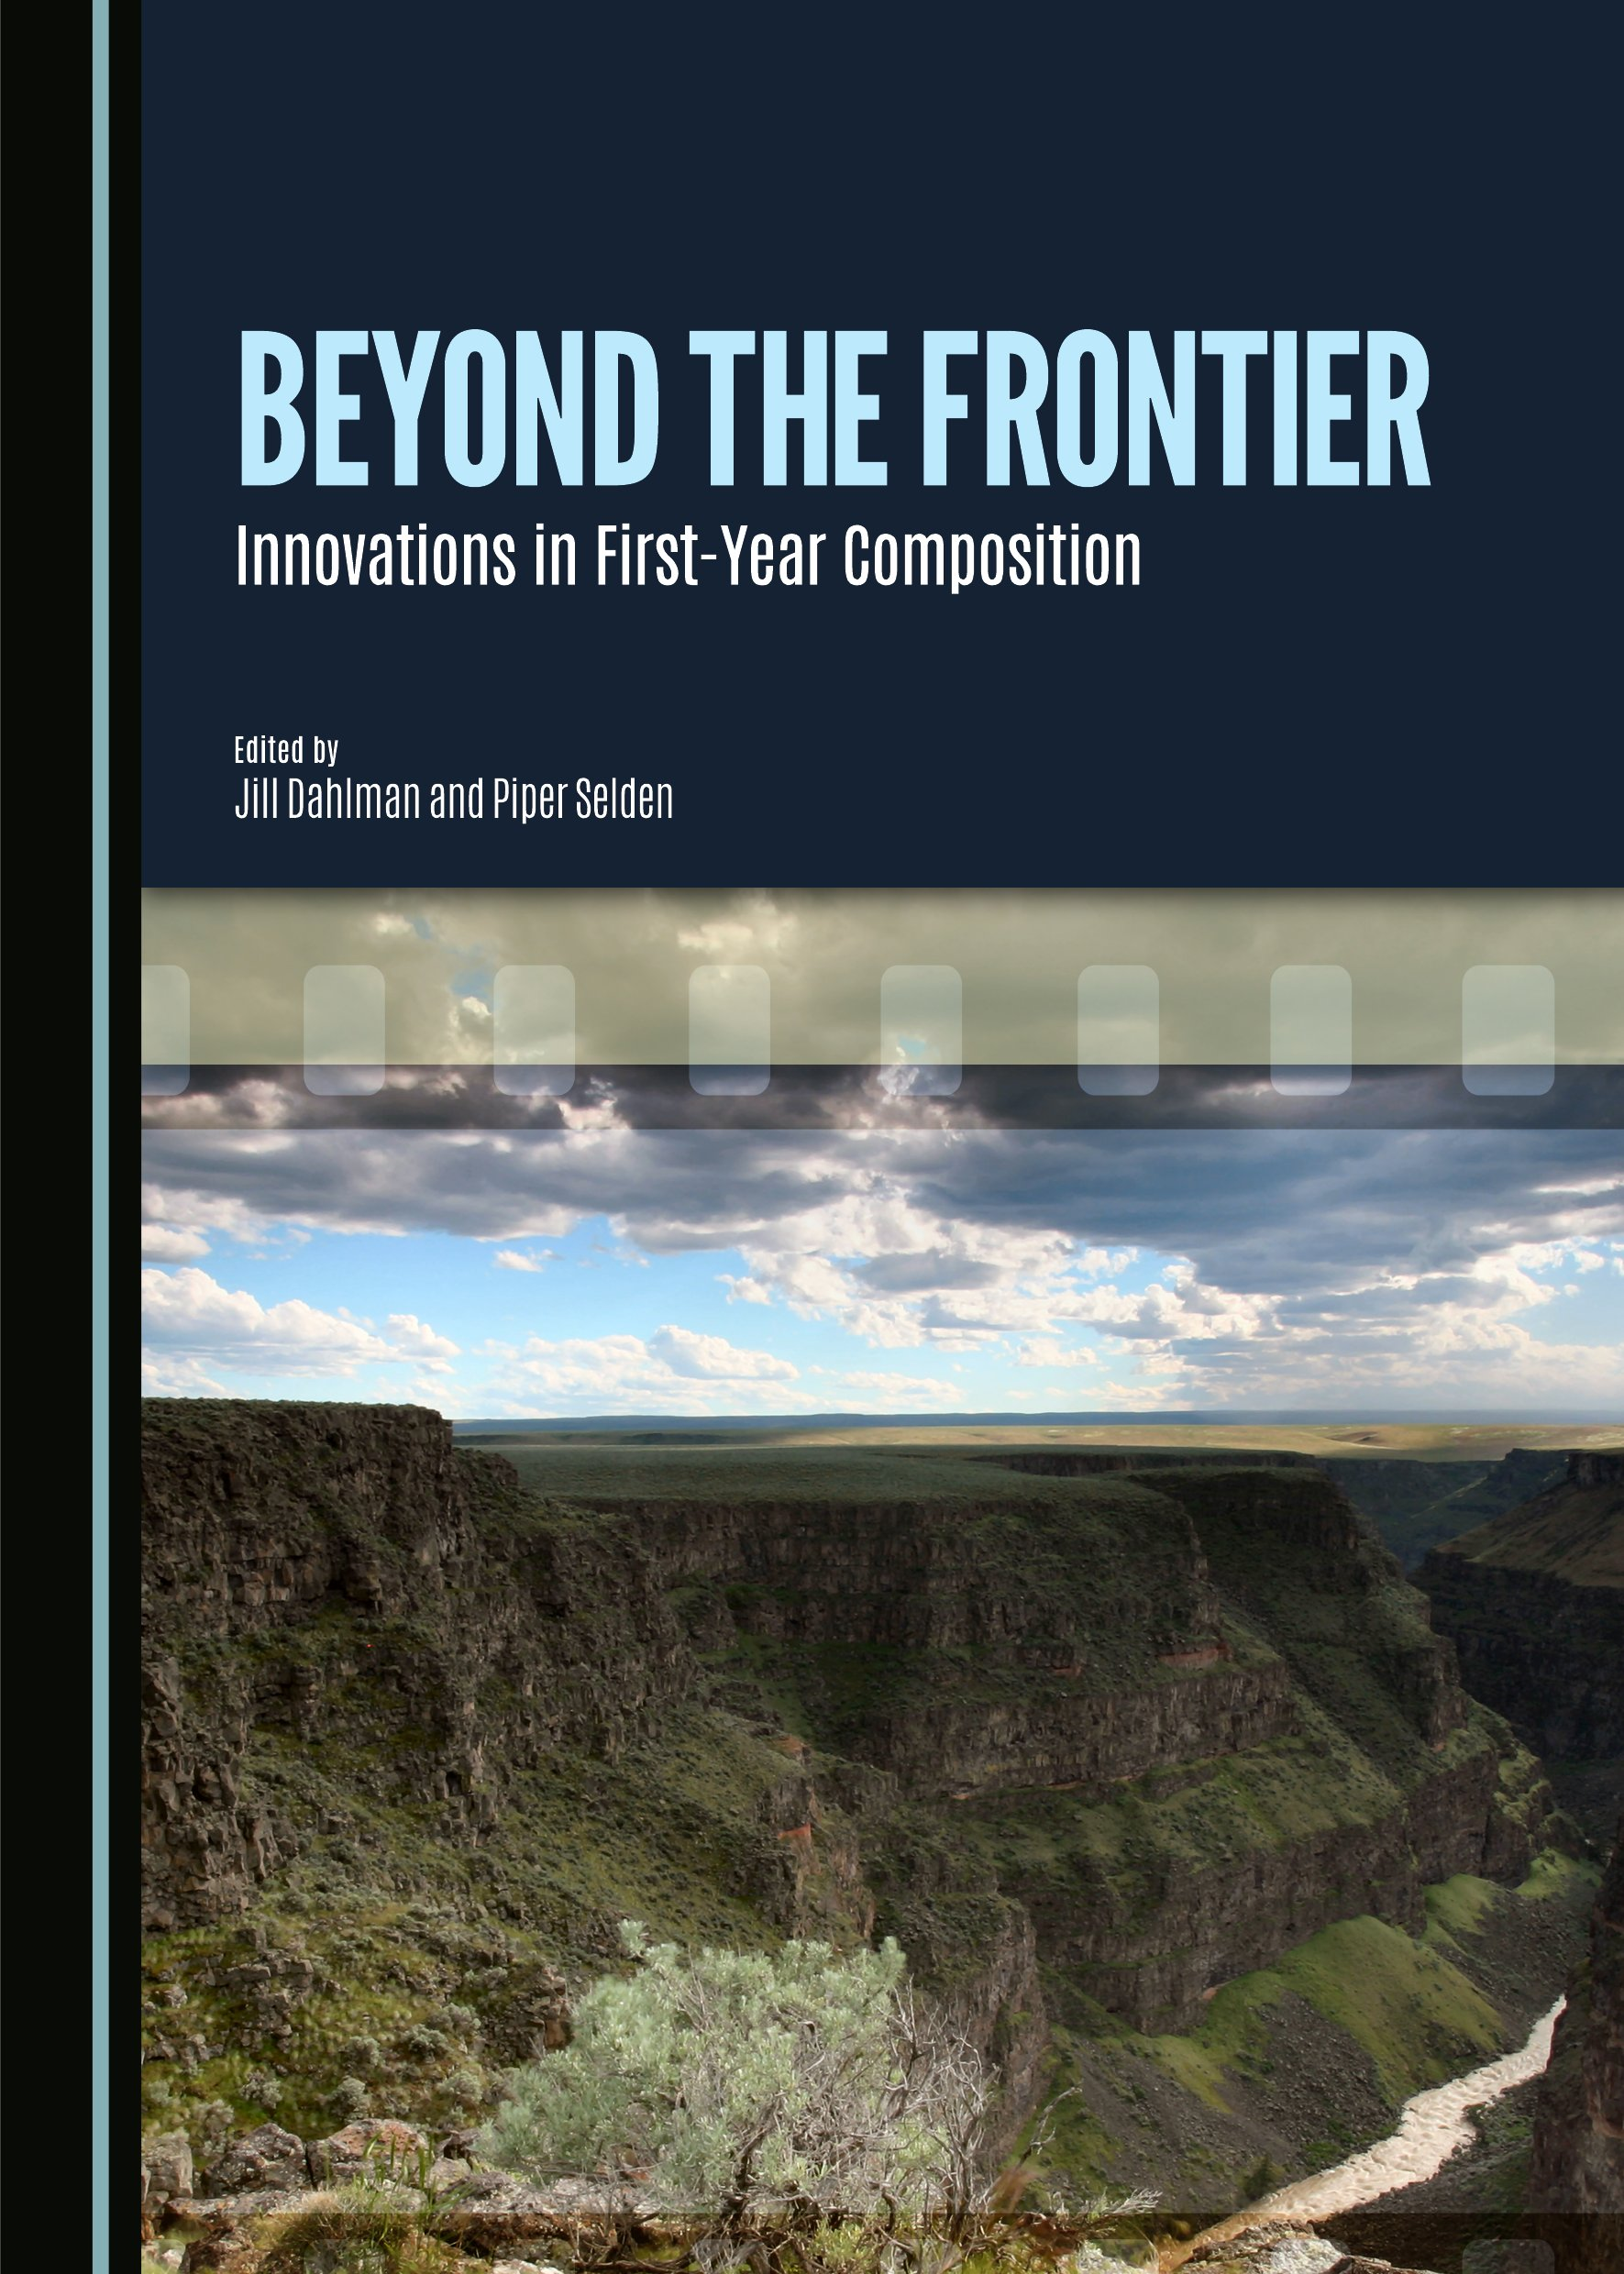 Beyond the Frontier: Innovations in First-Year Composition